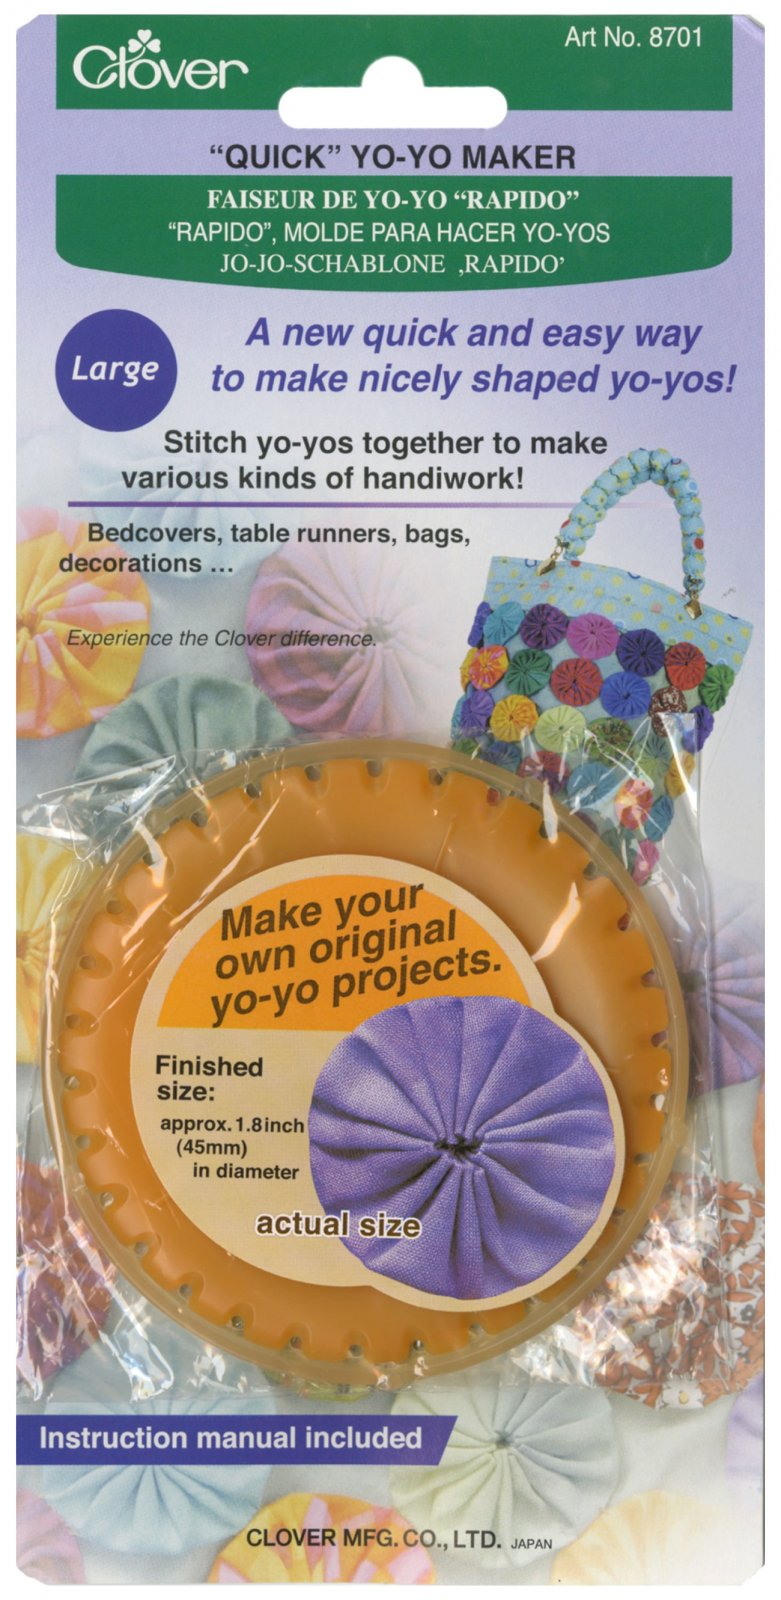 Quick Yo-Yo Maker - Large